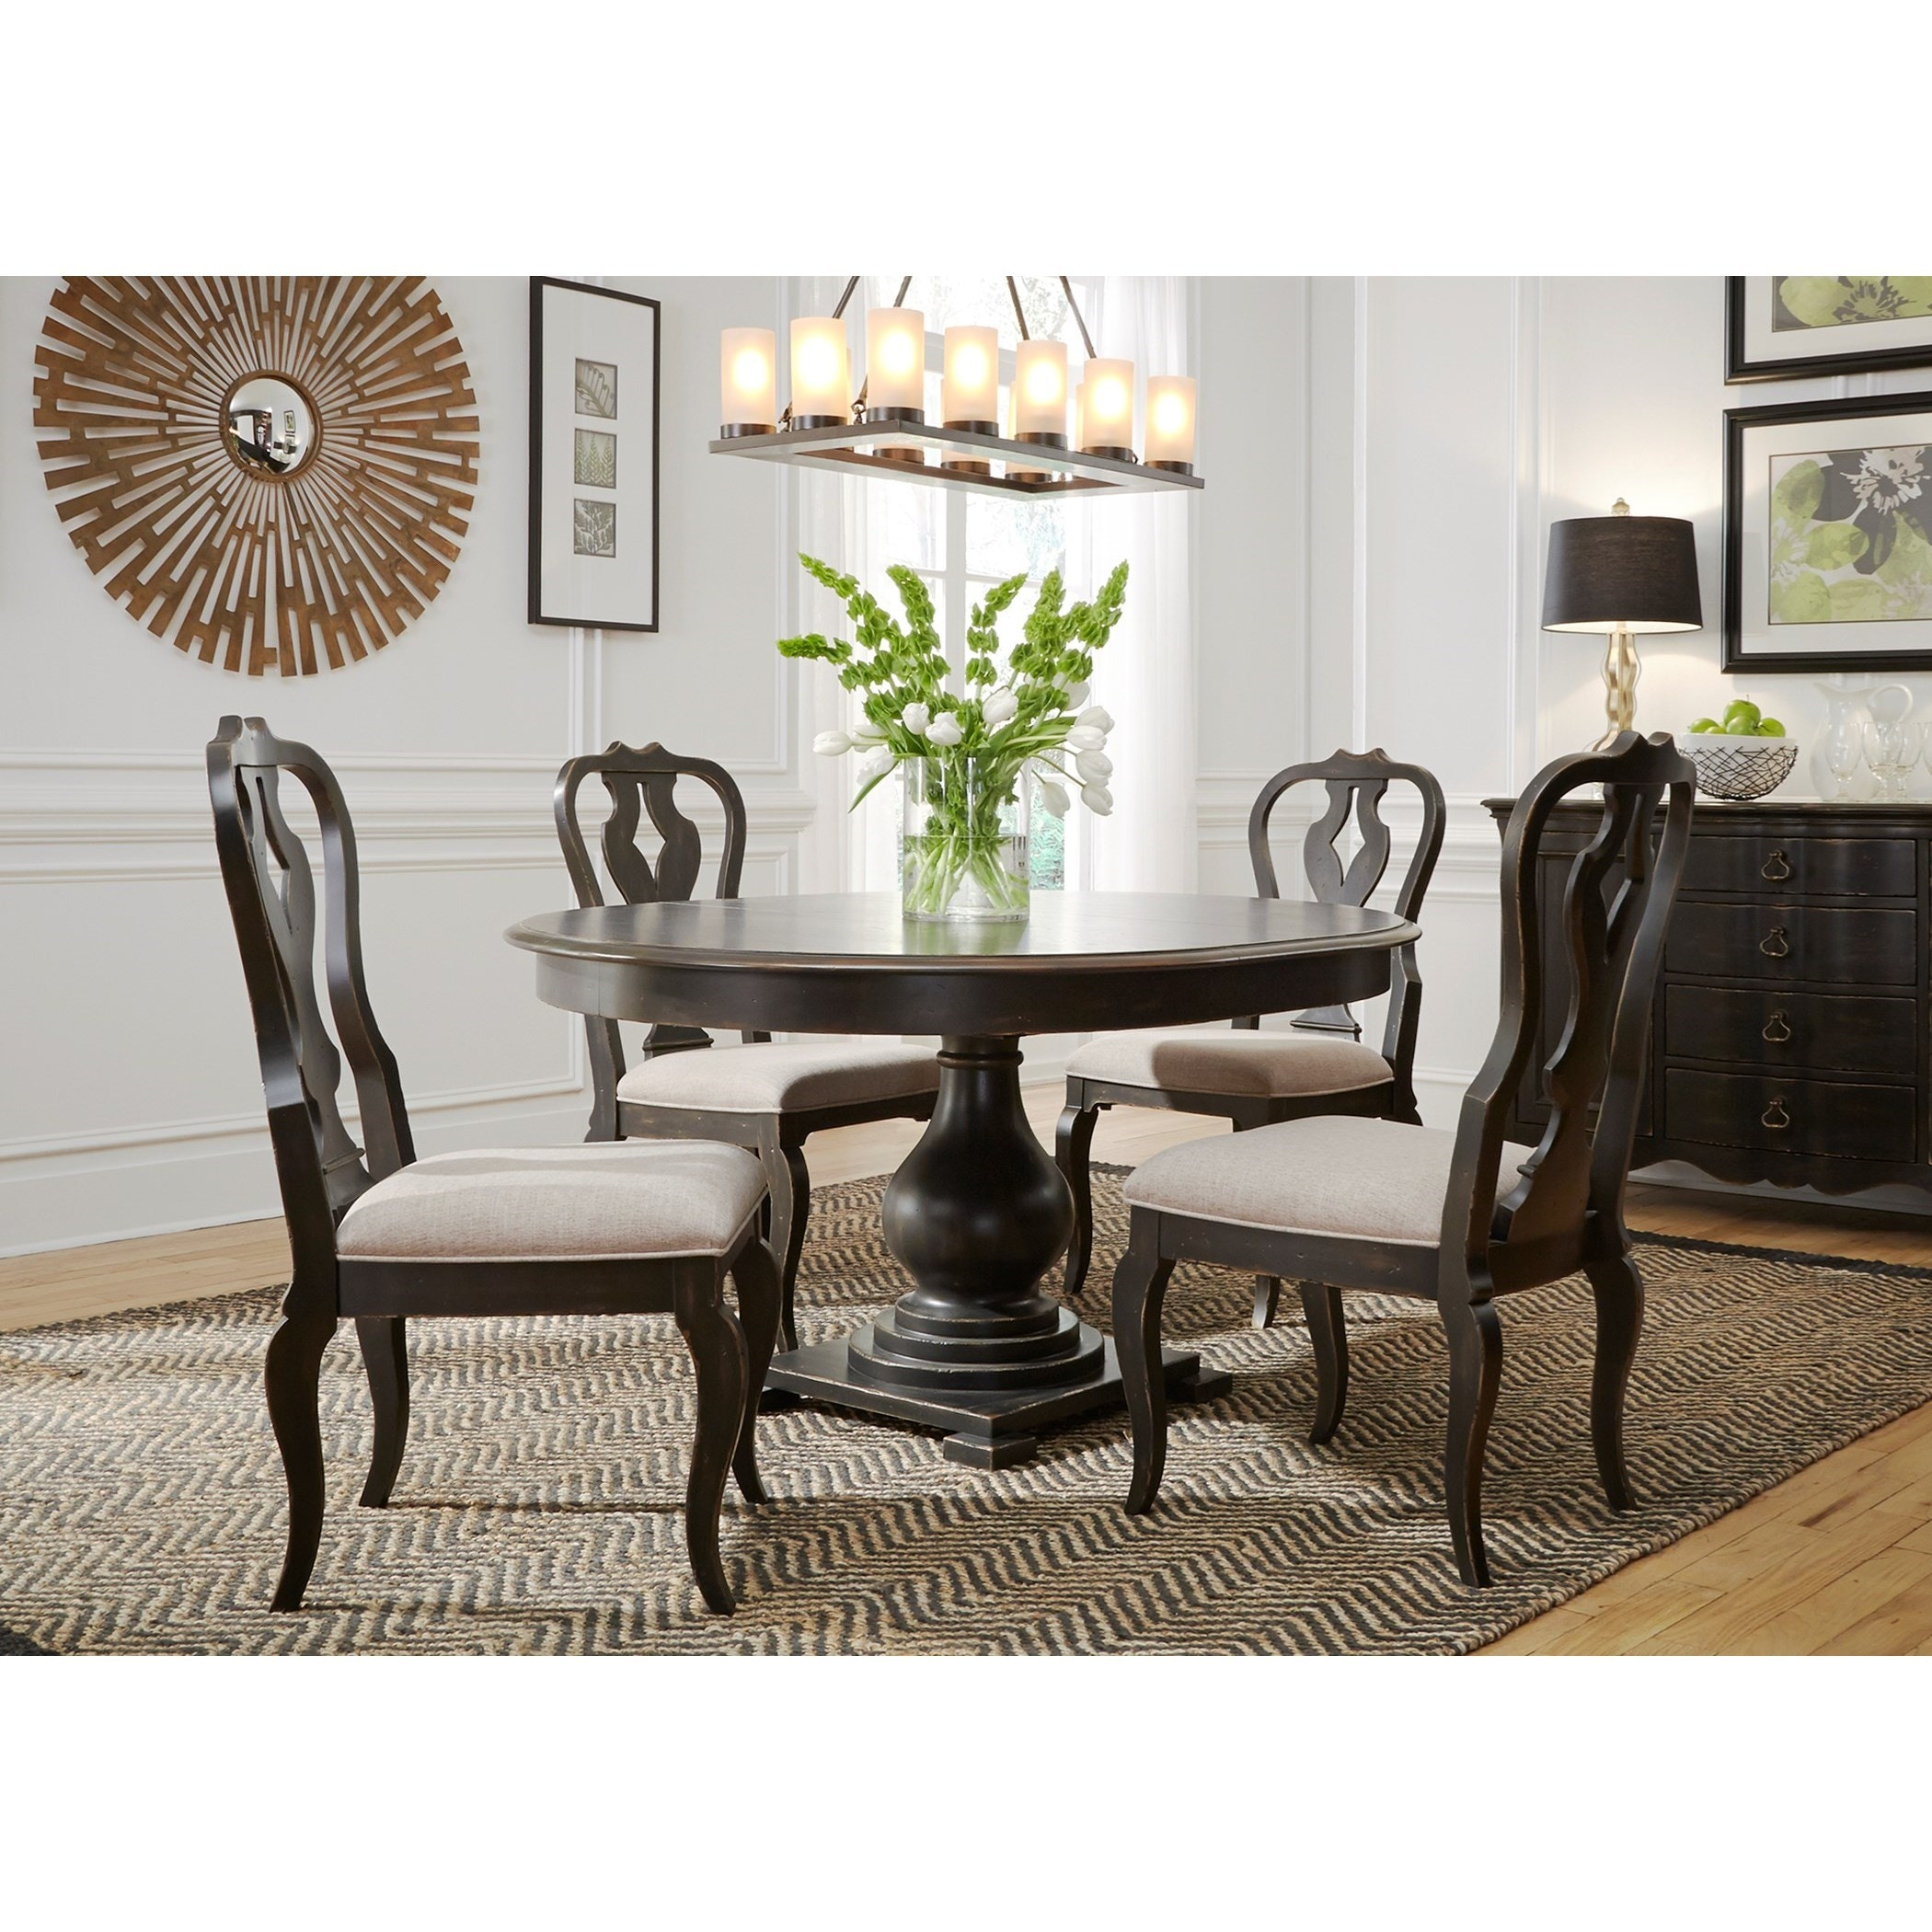 4 chair living room table liberty table chairs pkg4936 dining room tables furnitureland delmar delaware